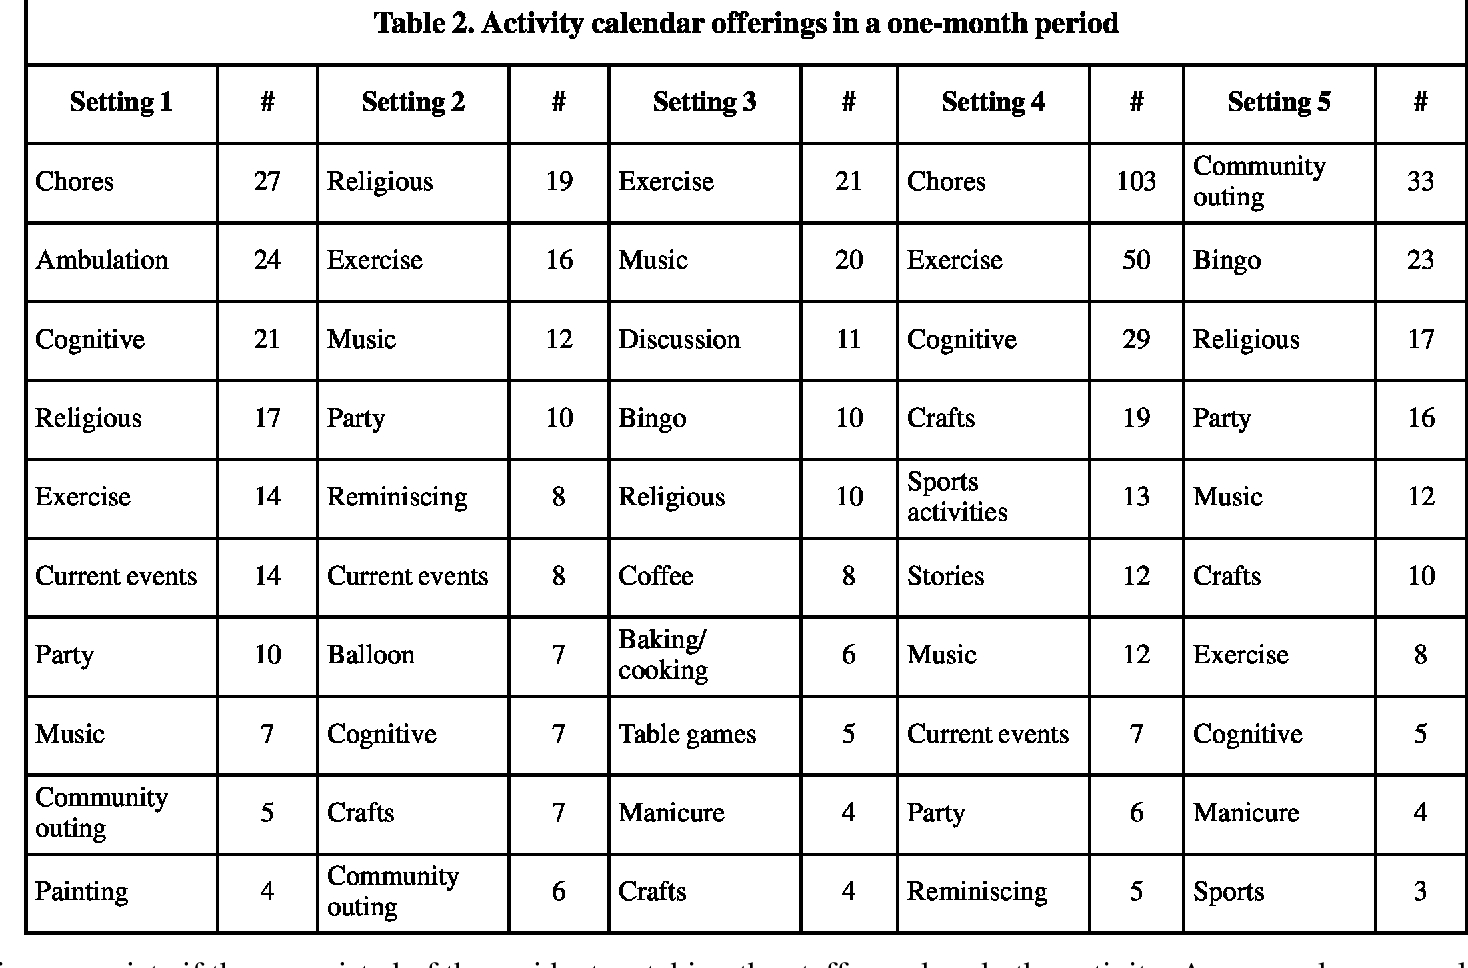 Activity Calendars For Older Adults With Dementia: What You